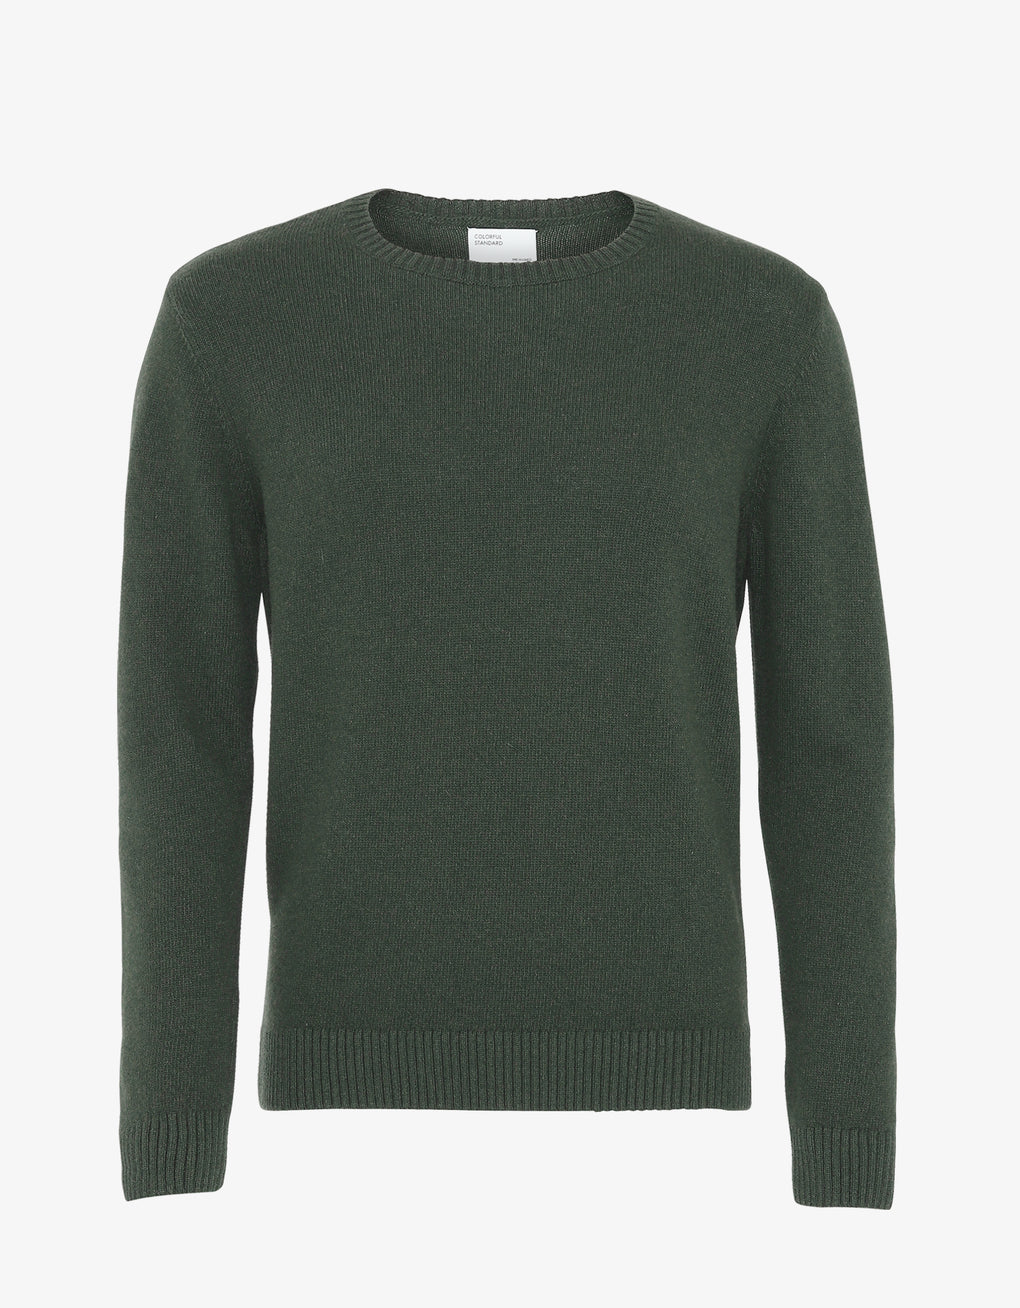 Colorful Standard Classic Merino Wool Crew Merino Crewneck Emerald Green